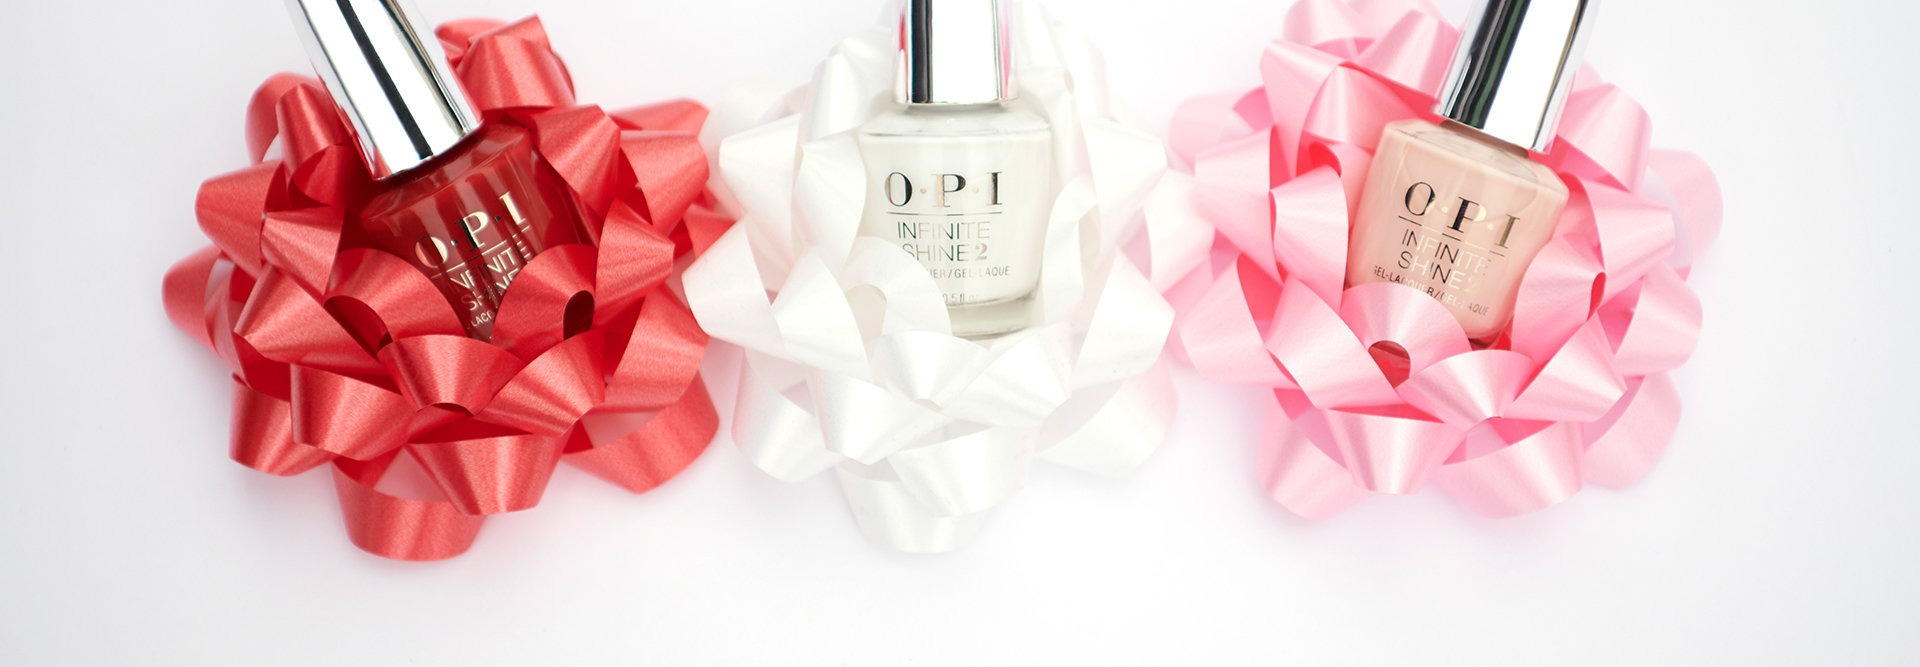 OPI Gifts perfect for every nail enthusiast